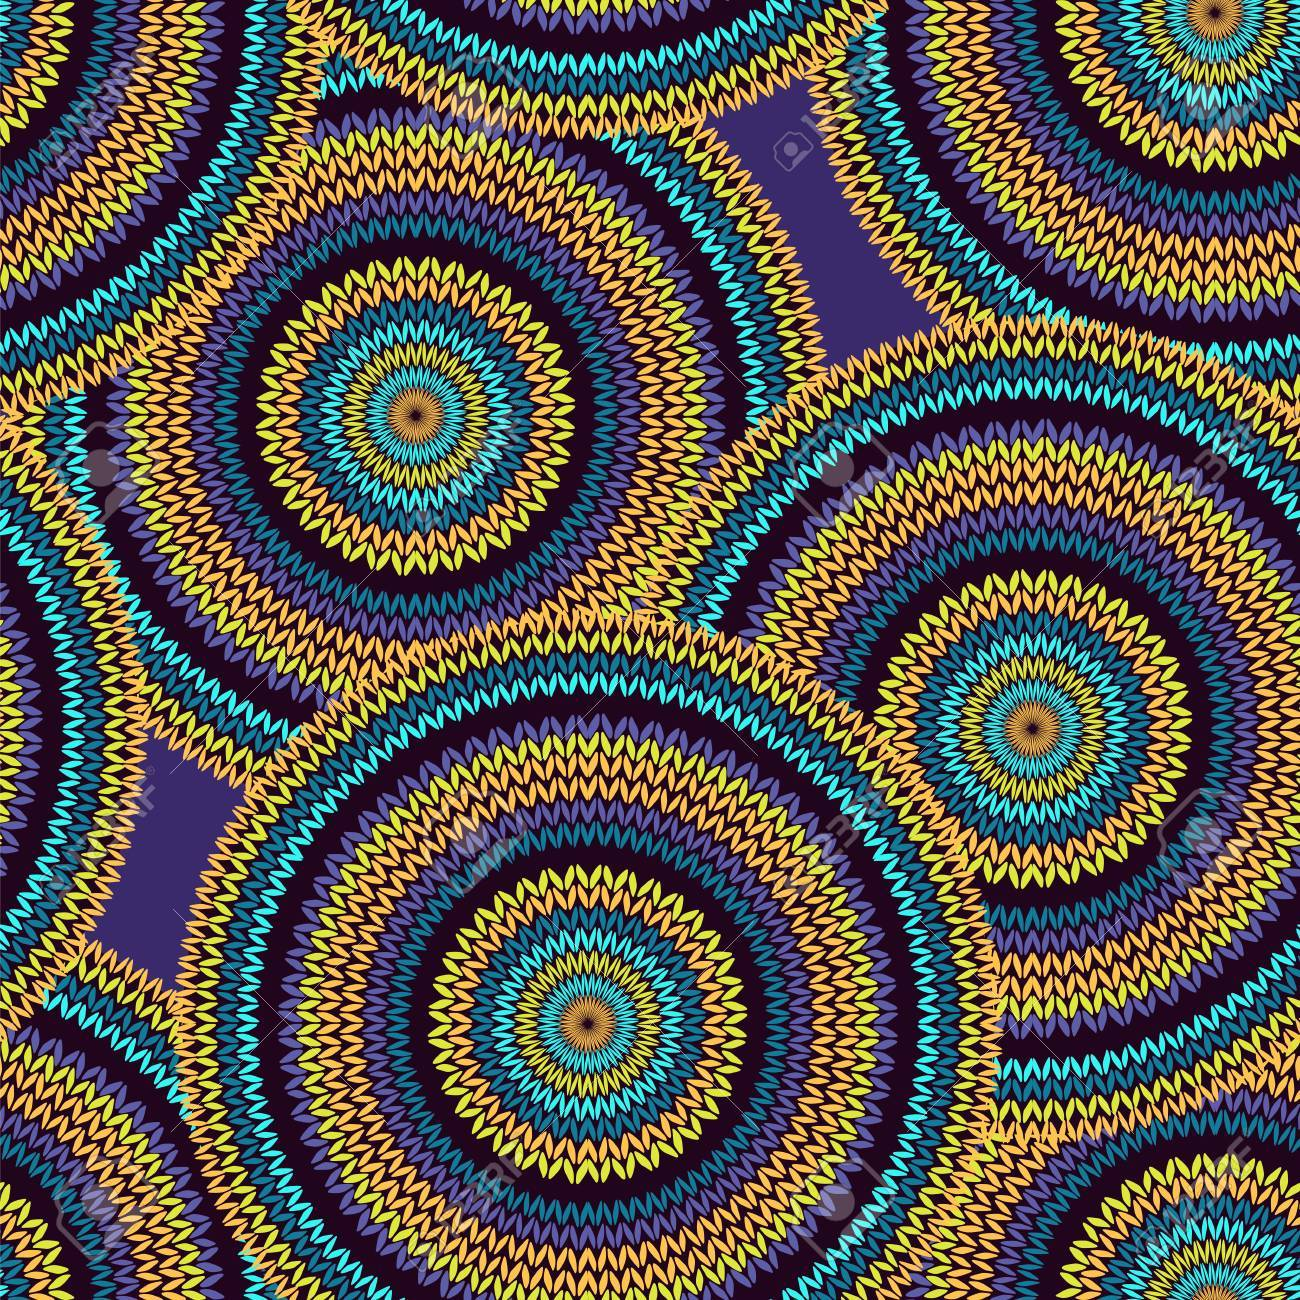 Abstract Seamless Ethnic Style Circle Simple Colorful Needlework Background, Ornamental Blue Violet Yellow Orange Black Round Geometric Knitted Pattern - 59408256